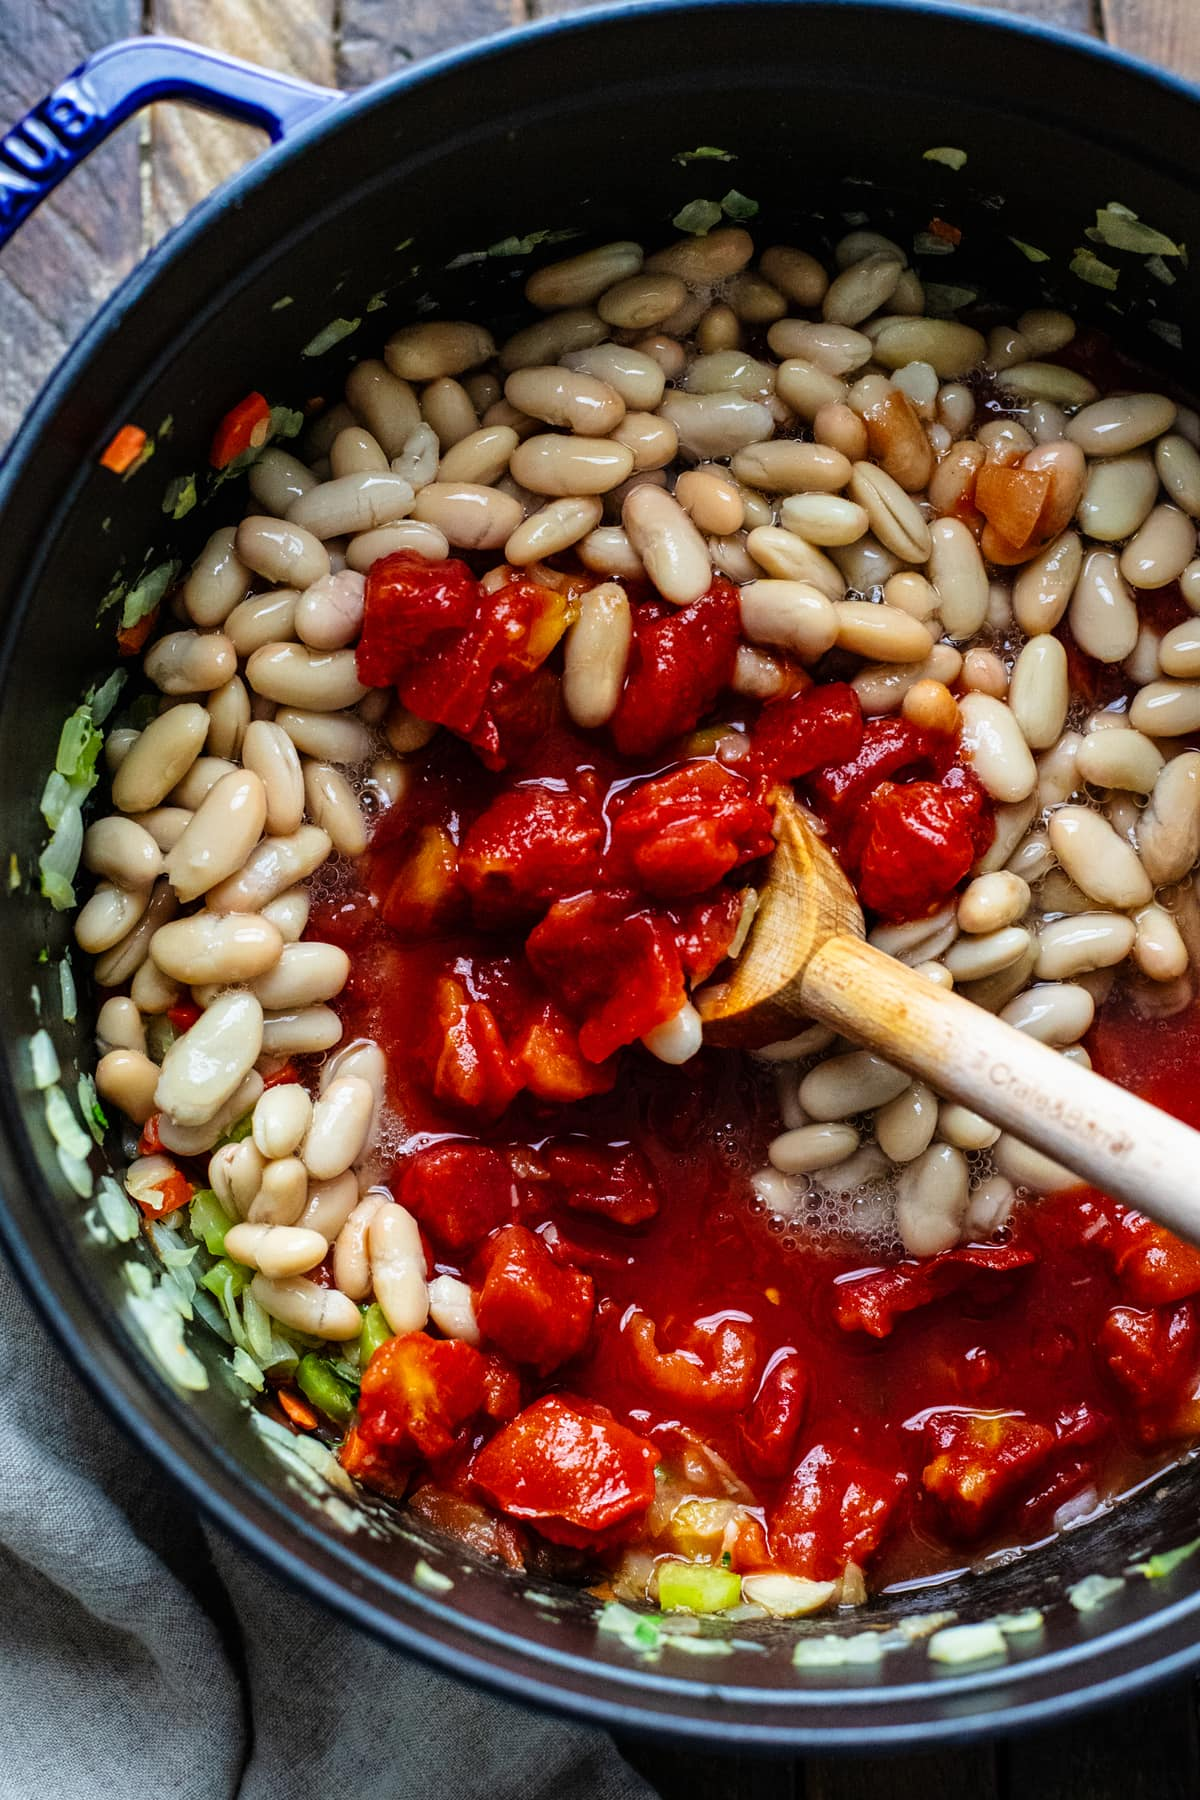 wooden spoon stirring diced tomatoes with white beans.